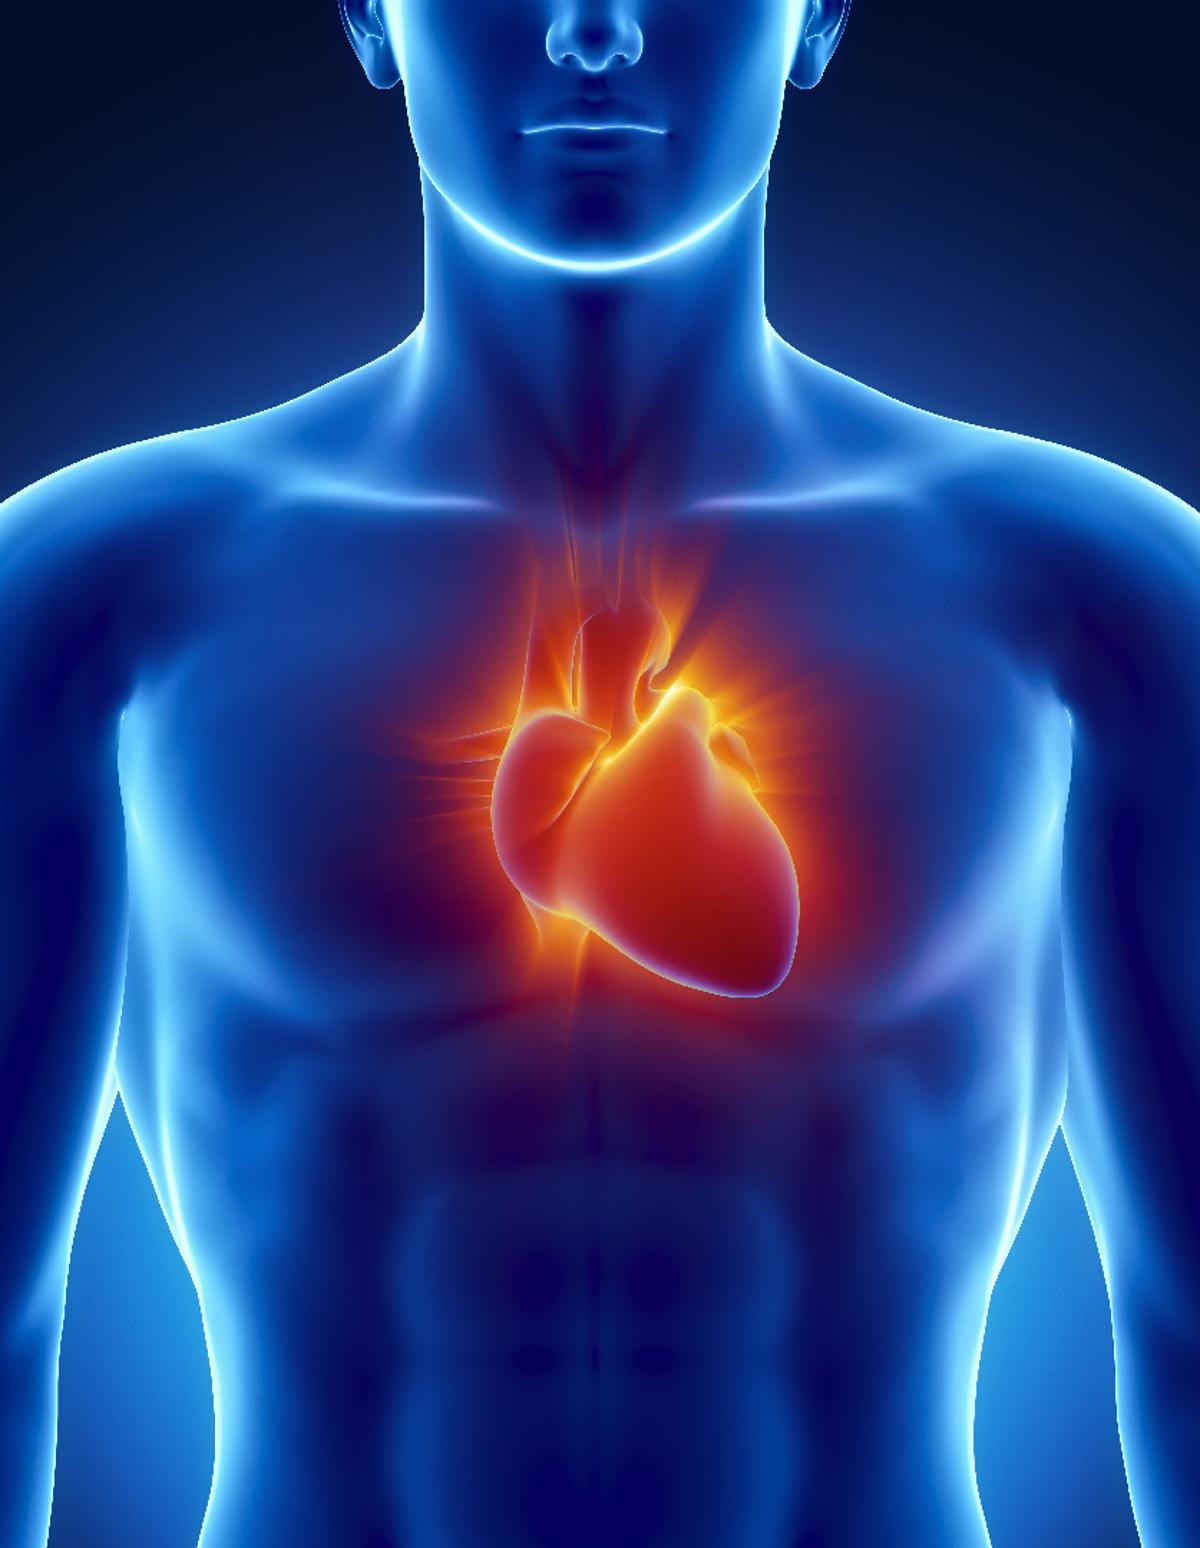 The exosomes from stem cells may be a useful tool in mitigating damage caused by heart attacks